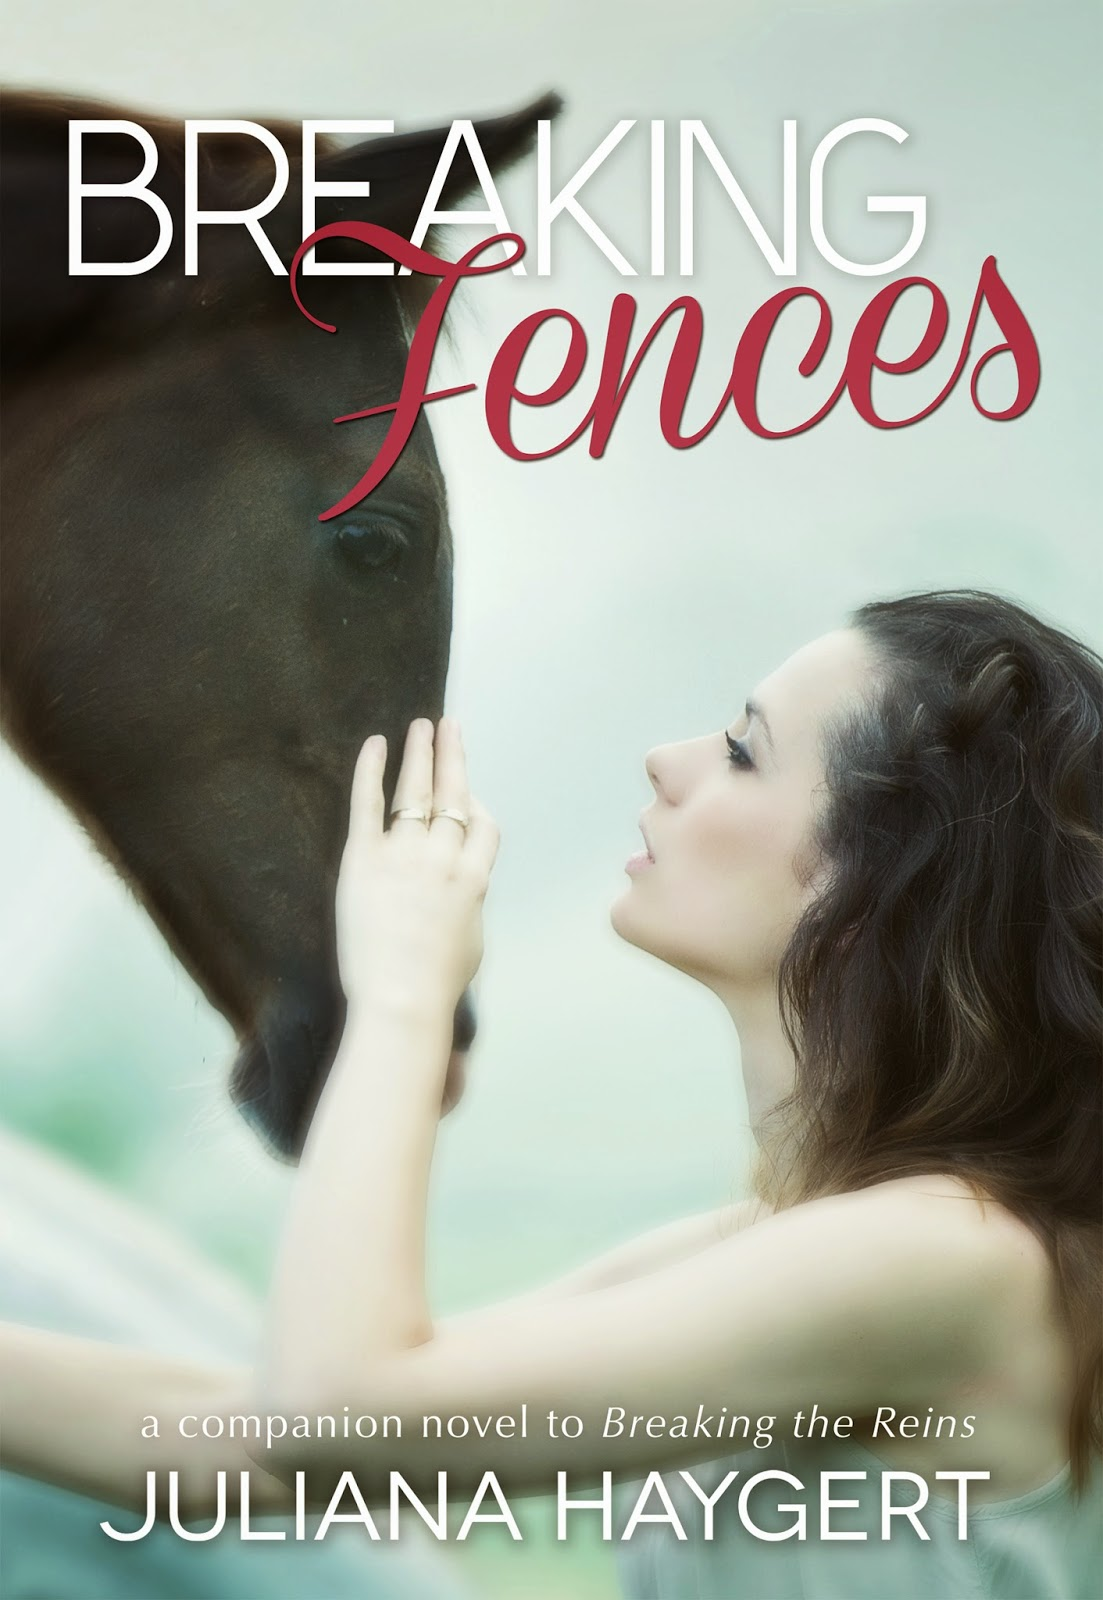 Cover Reveal – Breaking Fences